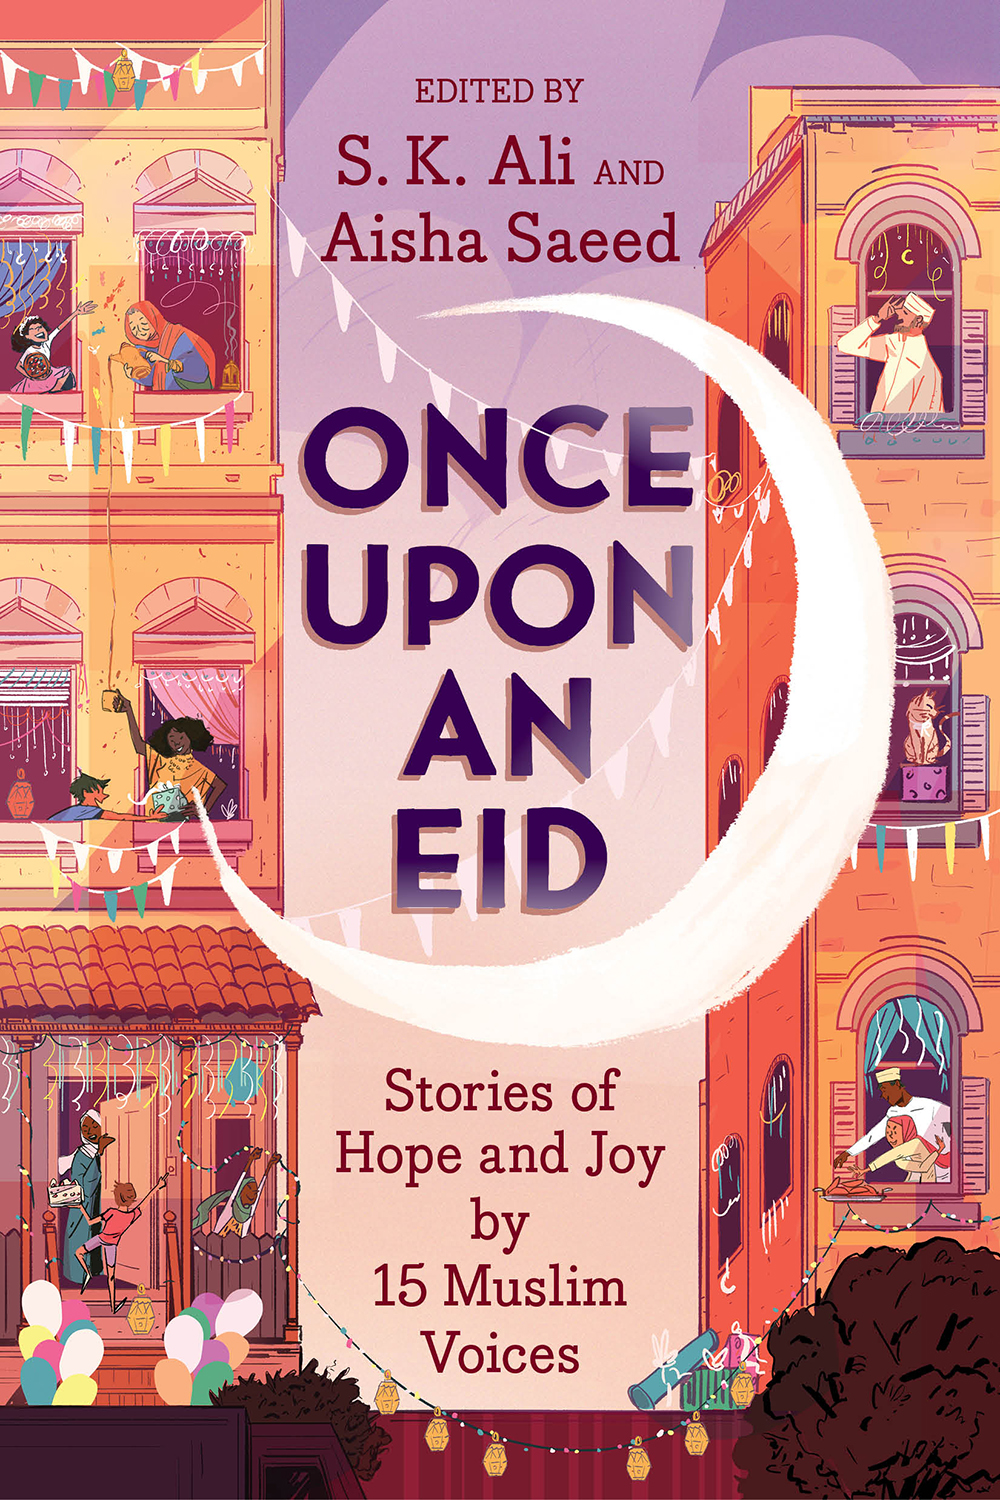 book cover image of Once Upon an Eid